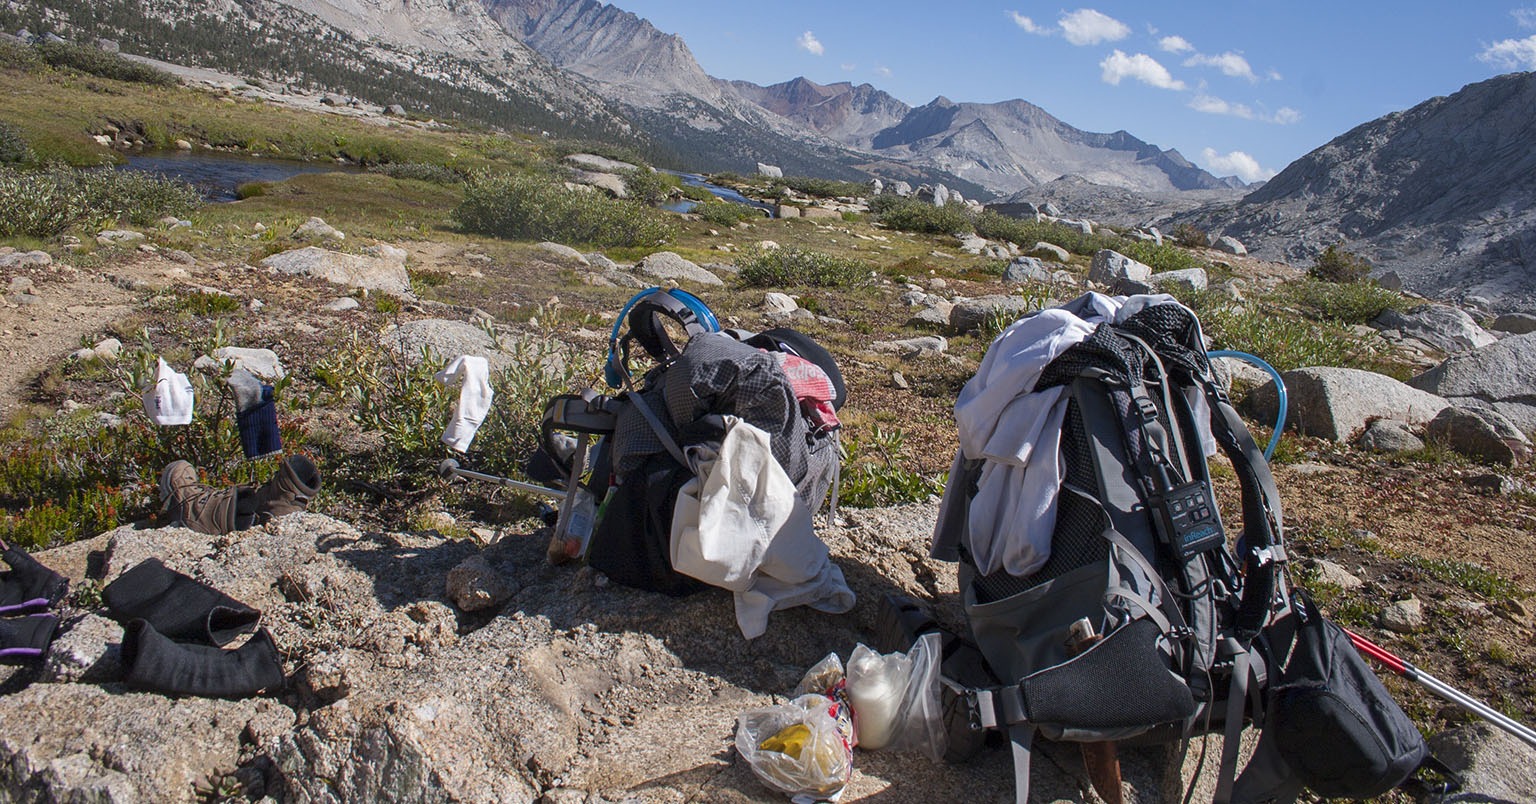 Packs resting in Upper Basin below Mather Pass